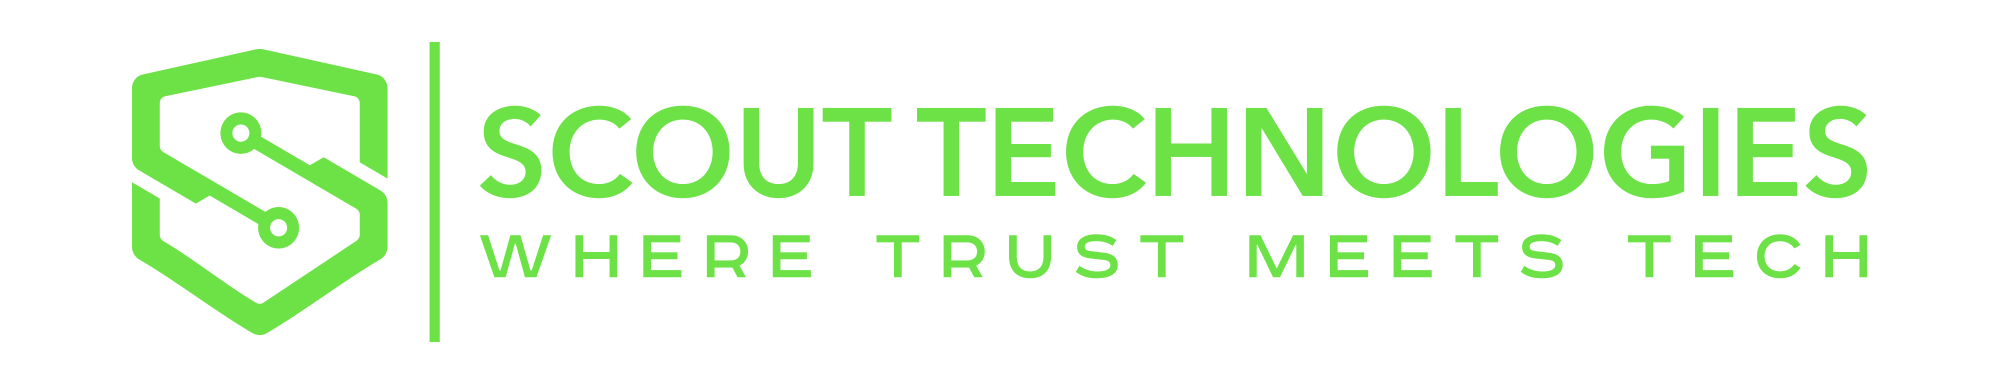 scout tech logo green